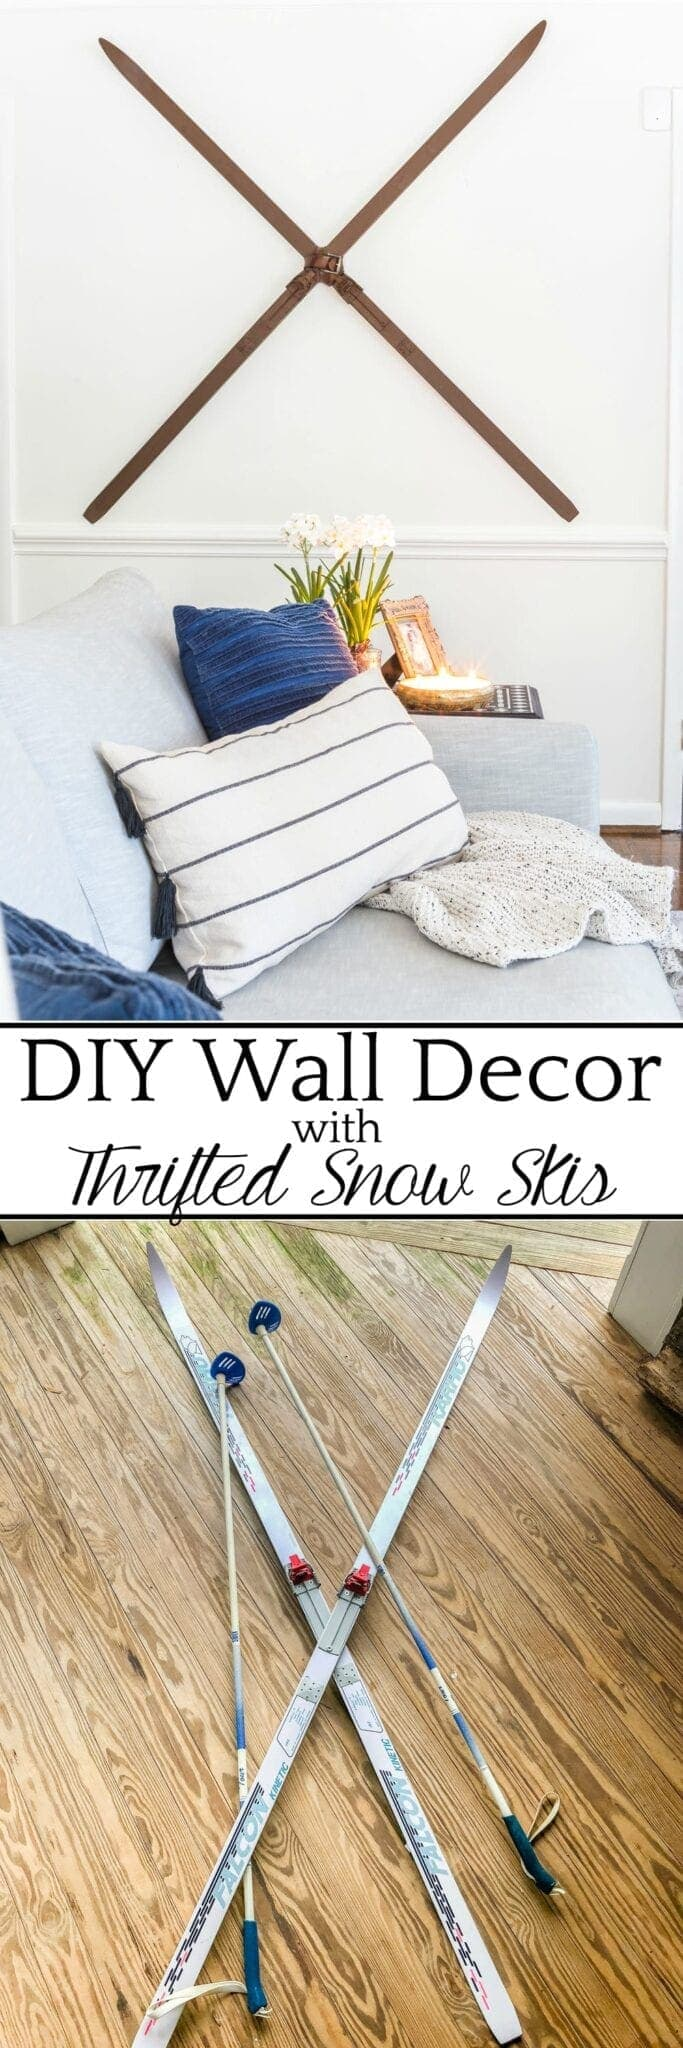 Faux Antique Winter Skis Wall Decor | How to turn basic fiberglass snow skis into winter wall decor using chalk paint and wax for an antique wood finish. #winterdecor #walldecor #christmasdecor #diychristmas #diydecor #thrifting #thriftyhome #thriftydecor #budgetdecor